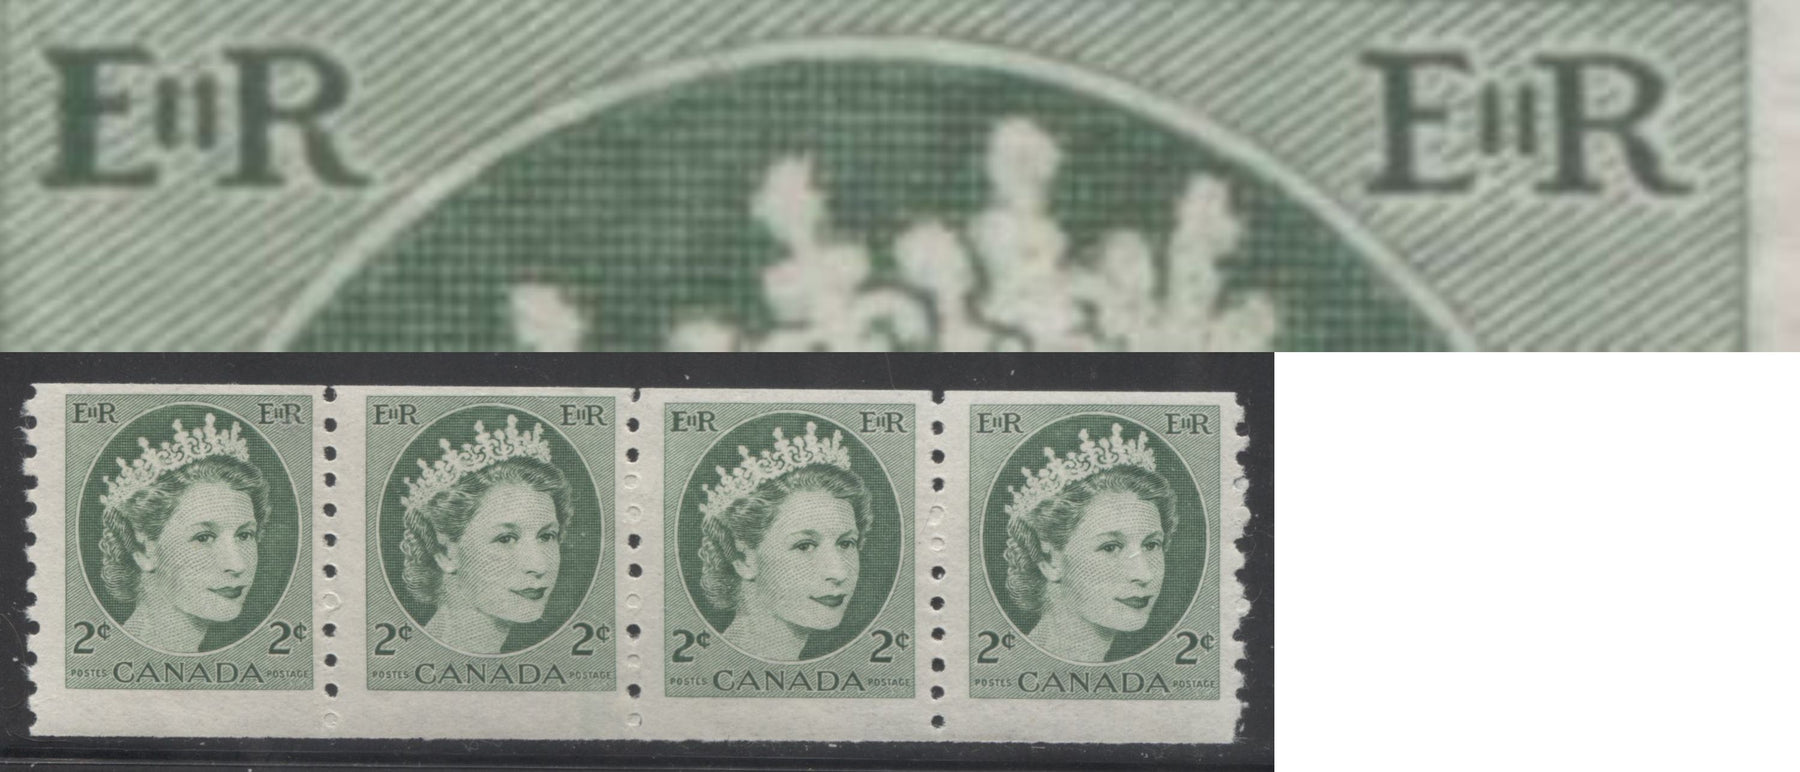 Canada #345vi 2c Light Green Queen Elizabeth II, 1954-1962 Wilding Issue, A Fine NH Coil Jump Strip on Fluorescent Ribbed Horizontal Wove Paper, Showing the Damaged E Variety